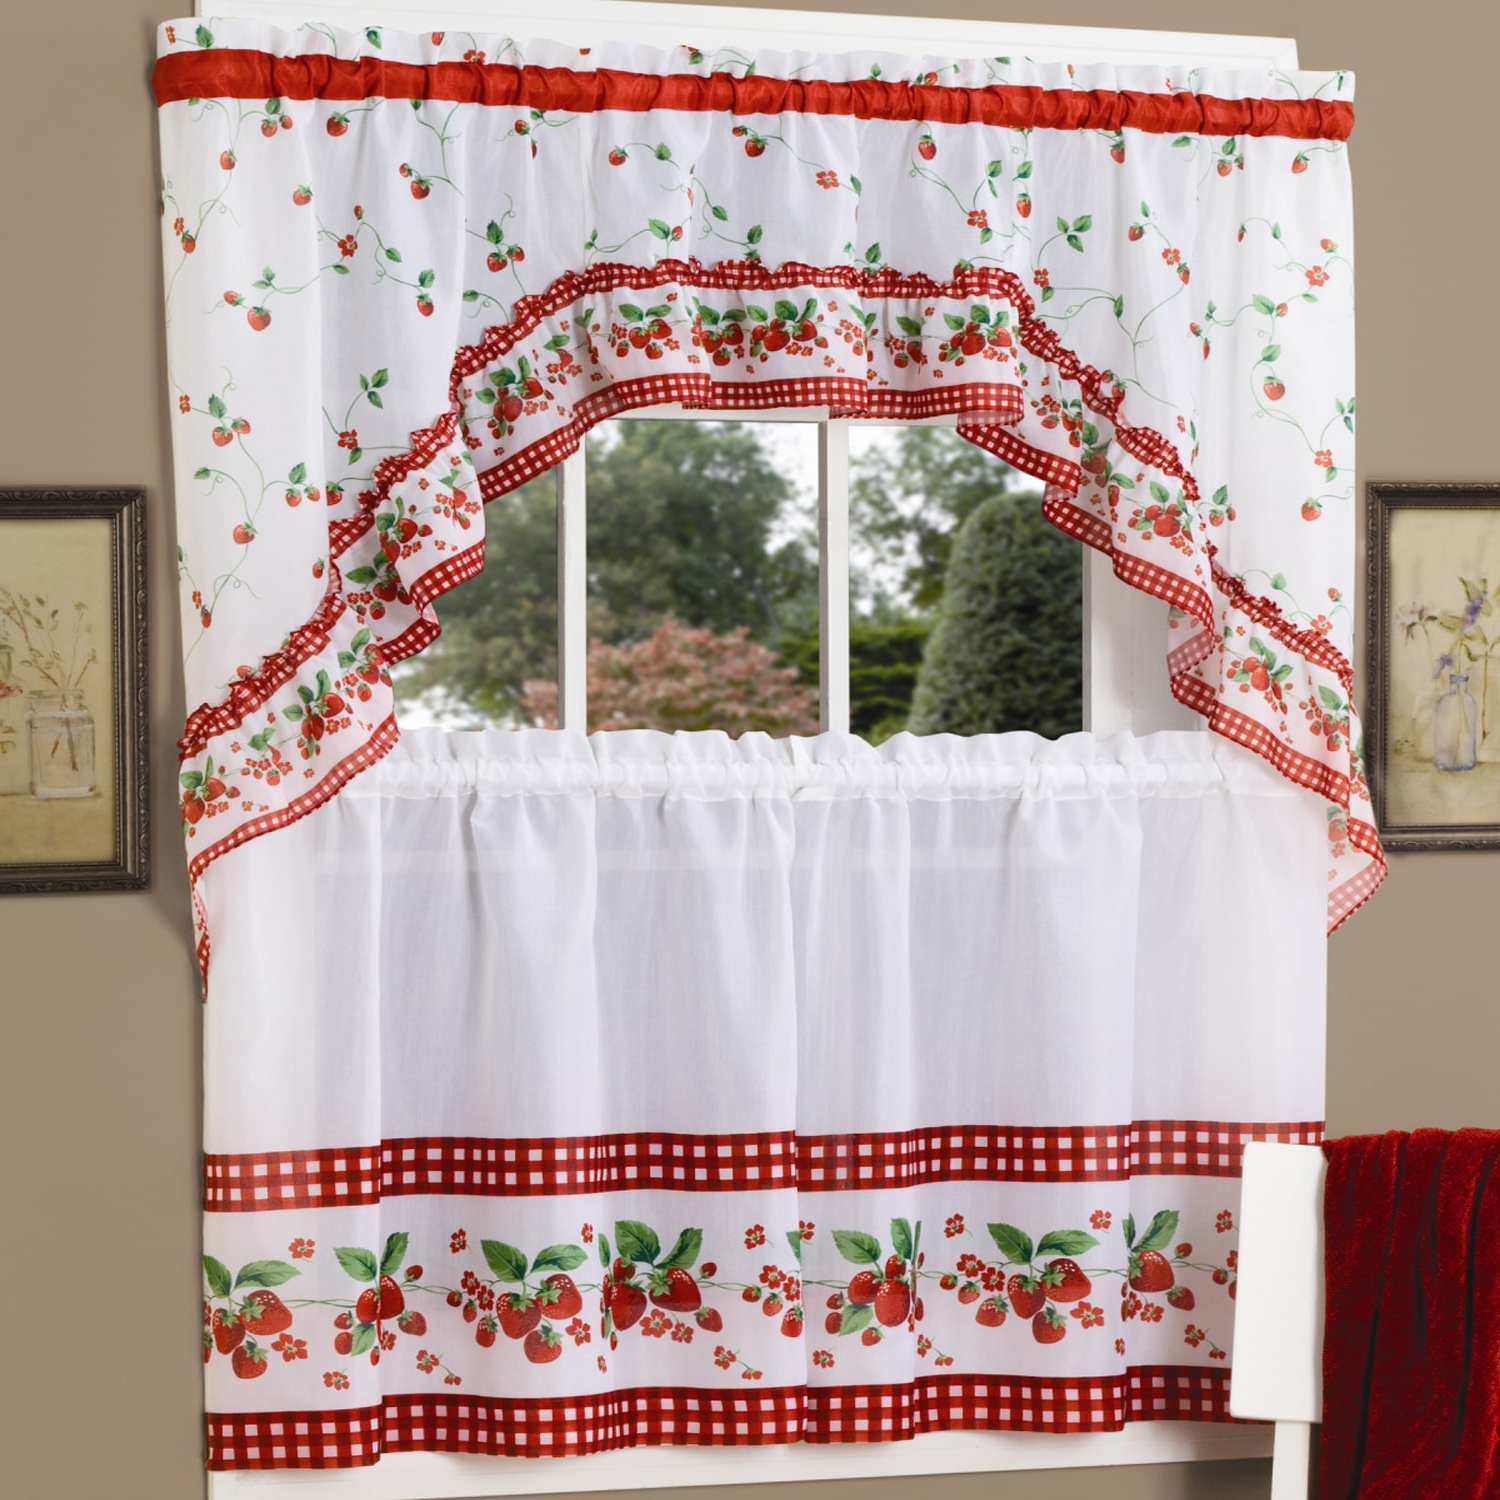 2021 Traditional Tailored Tier And Swag Window Curtains Sets With Ornate Flower Garden Print Within Traditional Two Piece Tailored Tier And Swag Window Curtains (View 4 of 20)